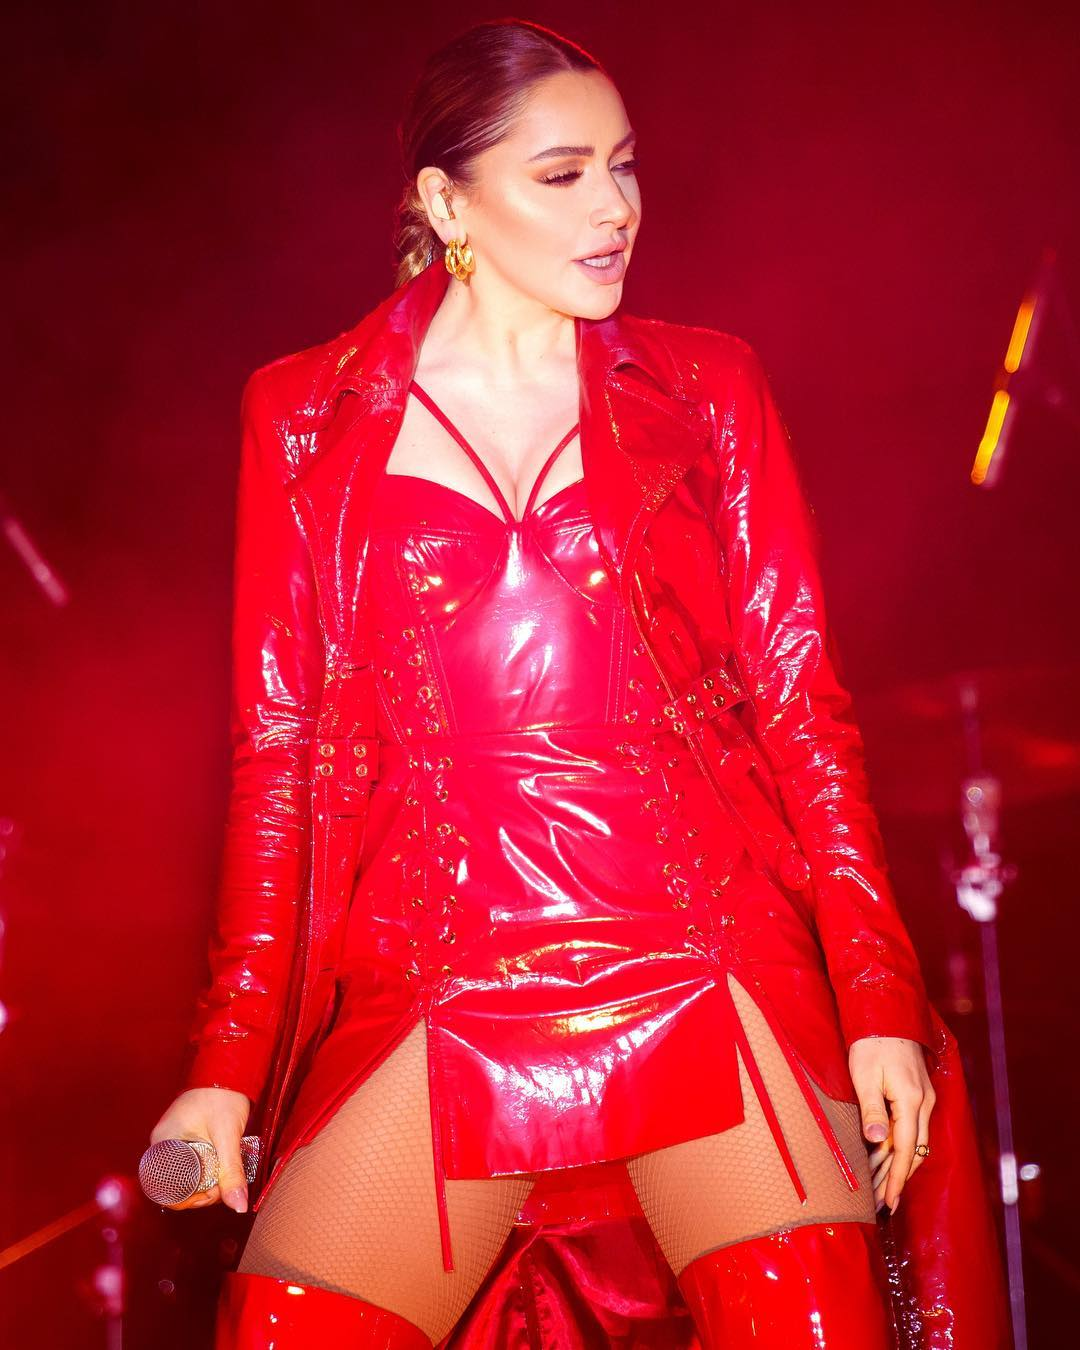 Singer and Model Shown as One of the Sexiest Women in Hadise Country 13